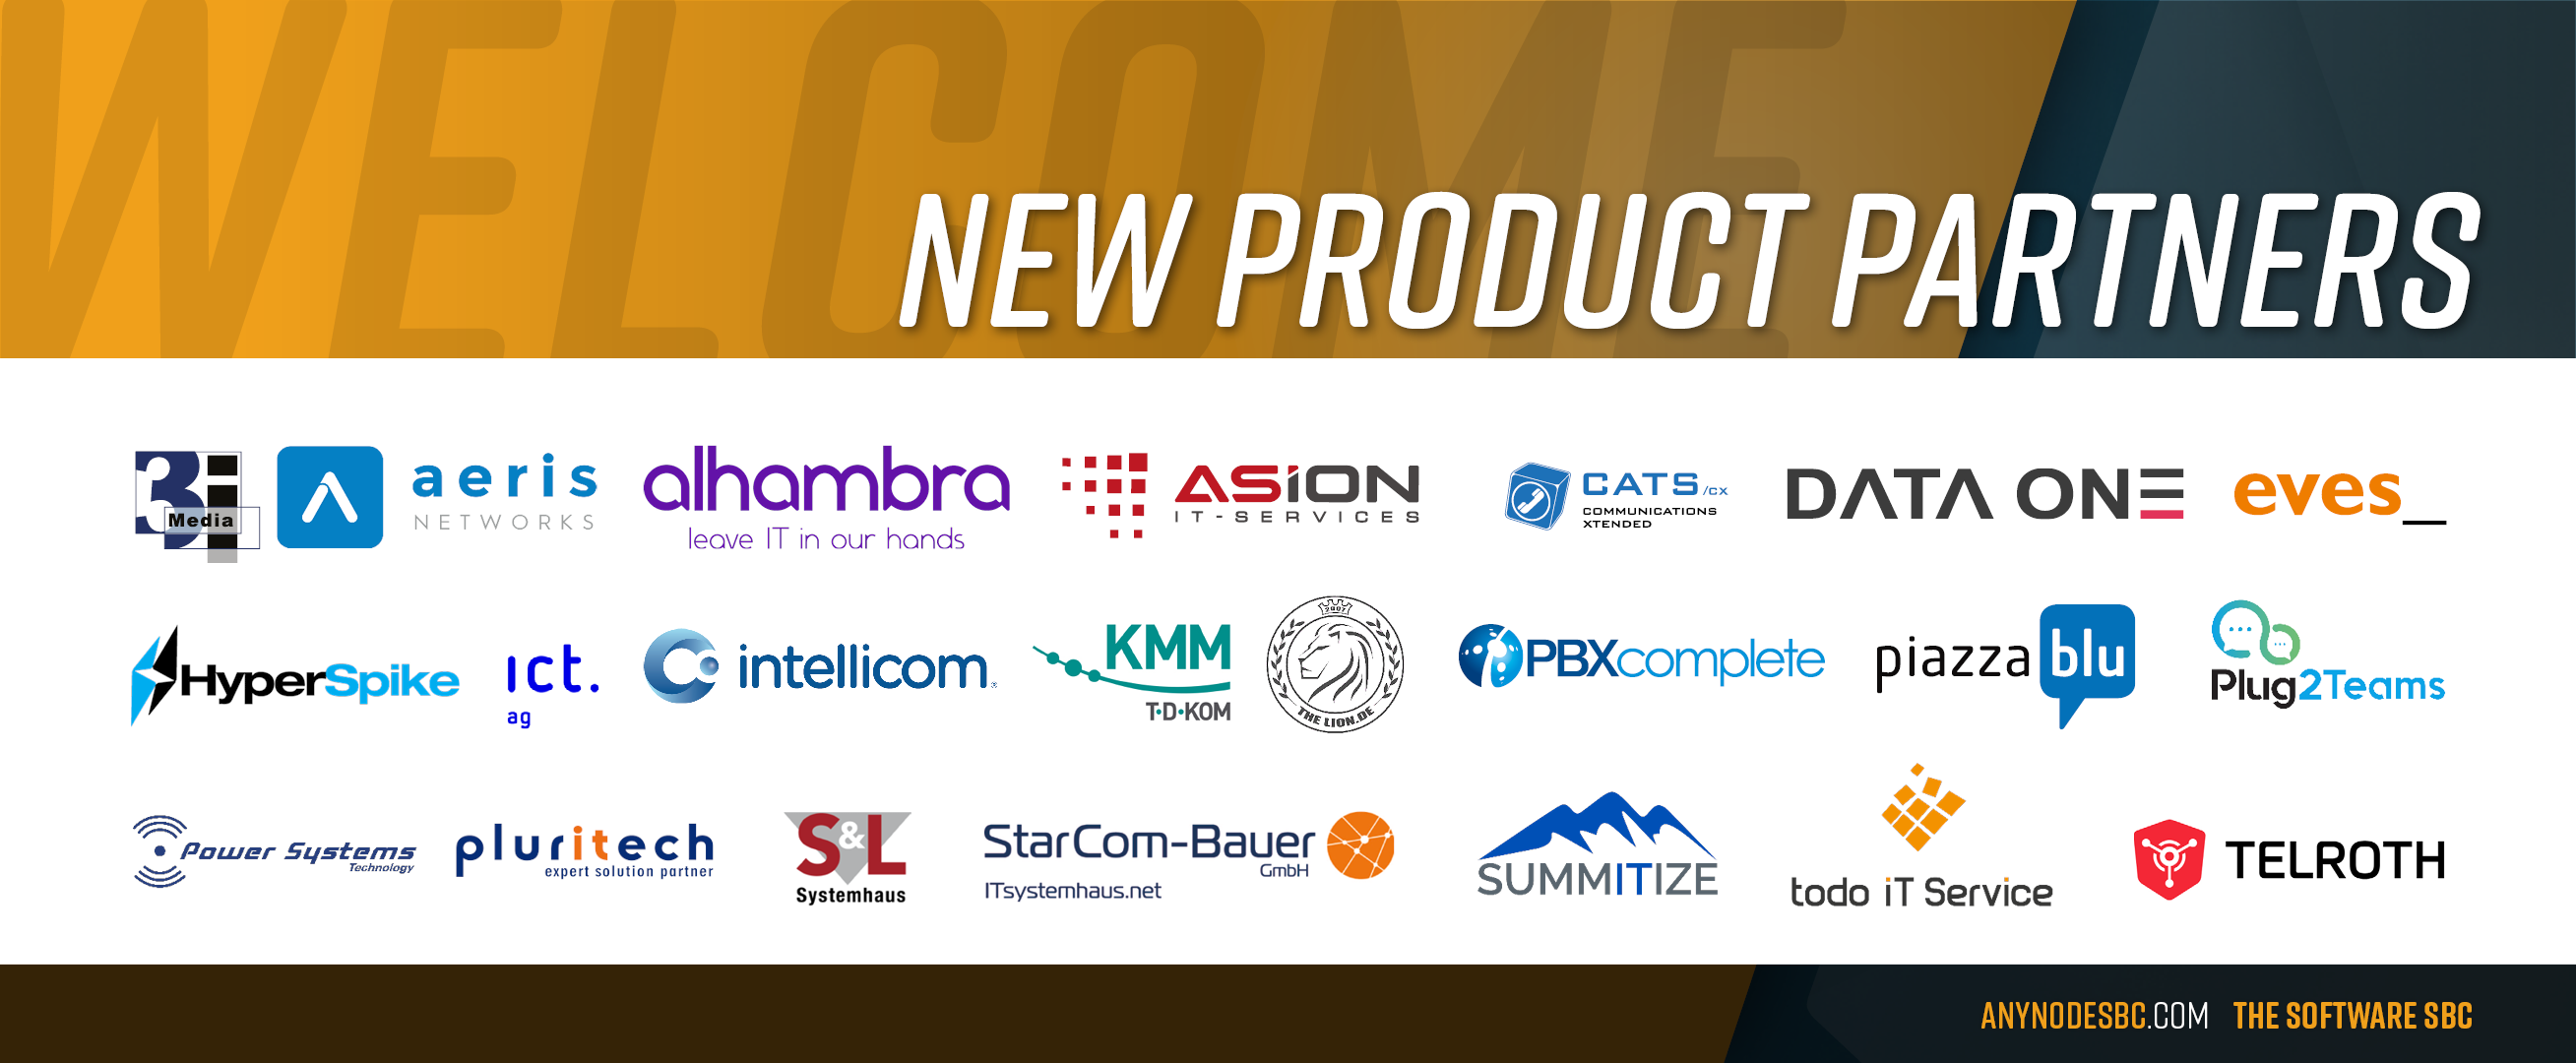 New anynode Product Partners in July 2020!